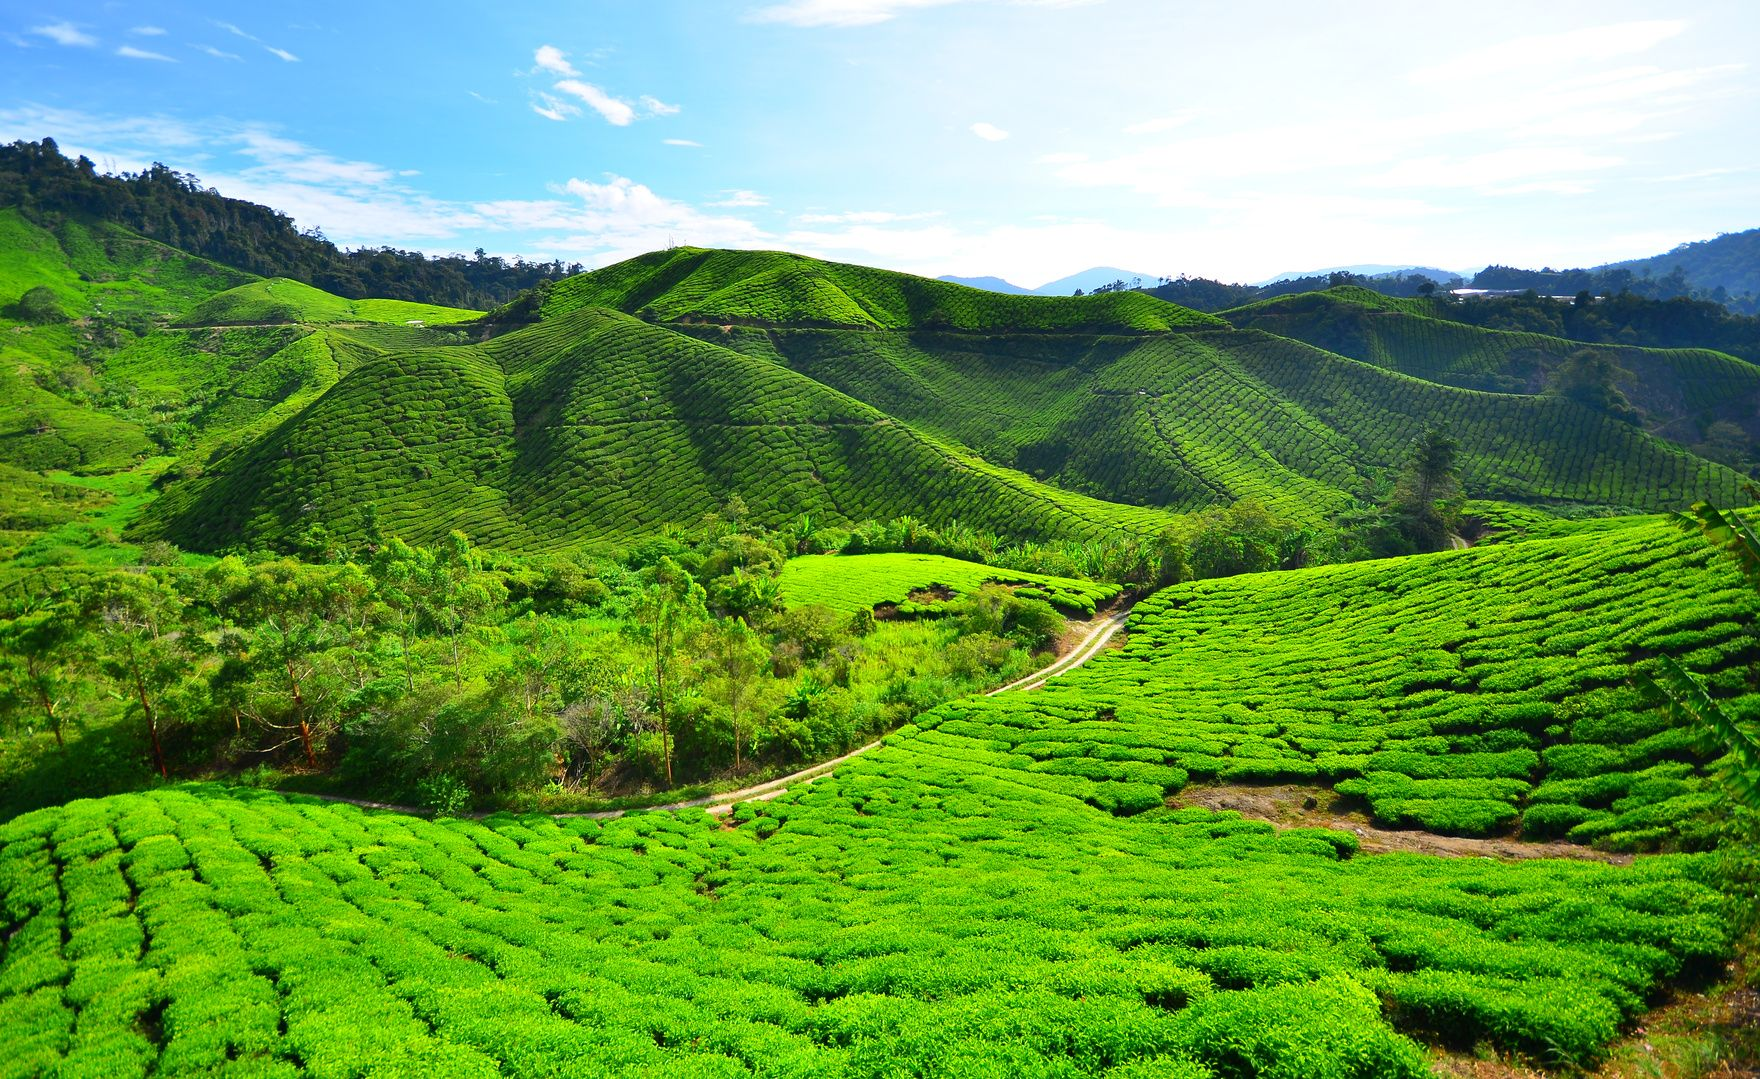 tea-plantation-fields-on-the-hills